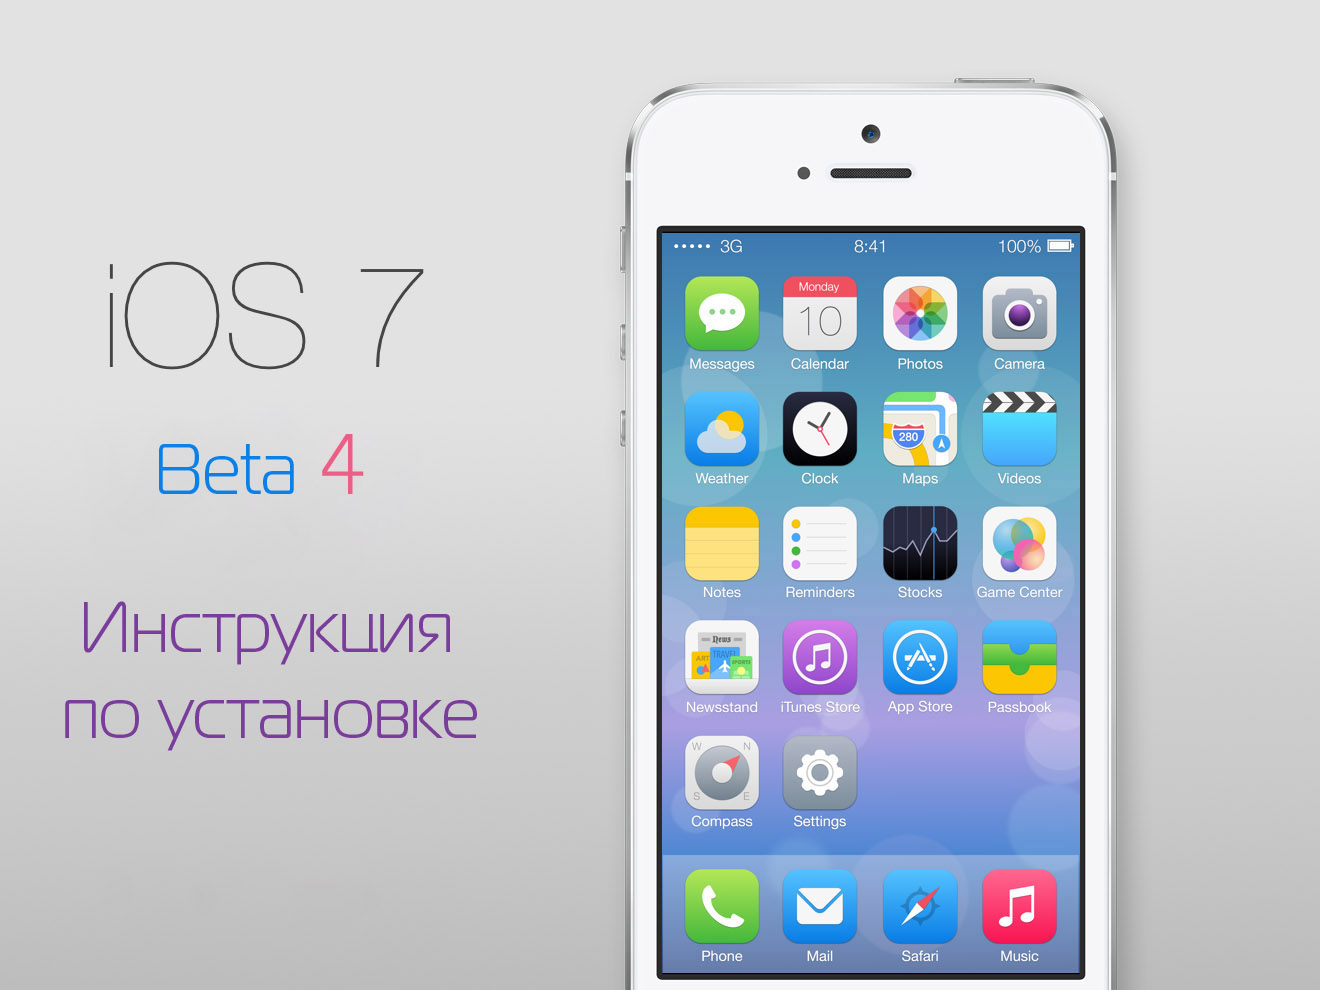 Как установить iOS 7 Beta 4 на iPhone, iPad, iPod touch. Инструкция